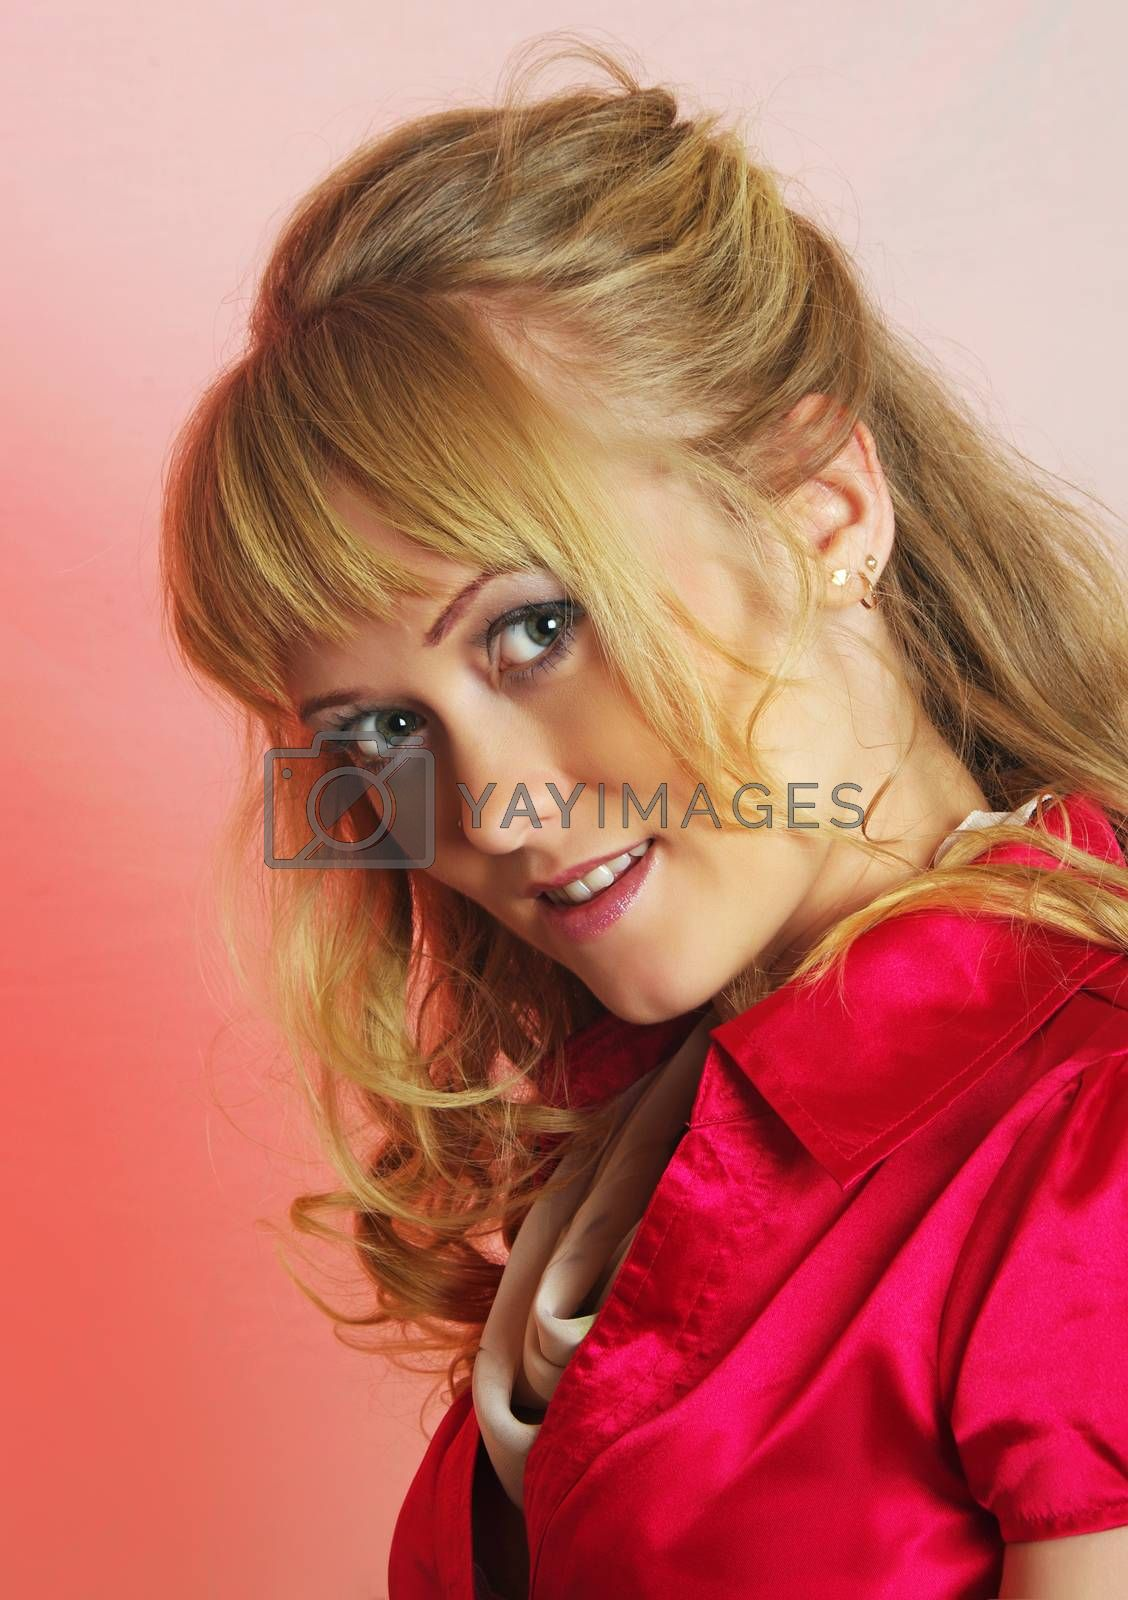 beautiful woman in red on pink background